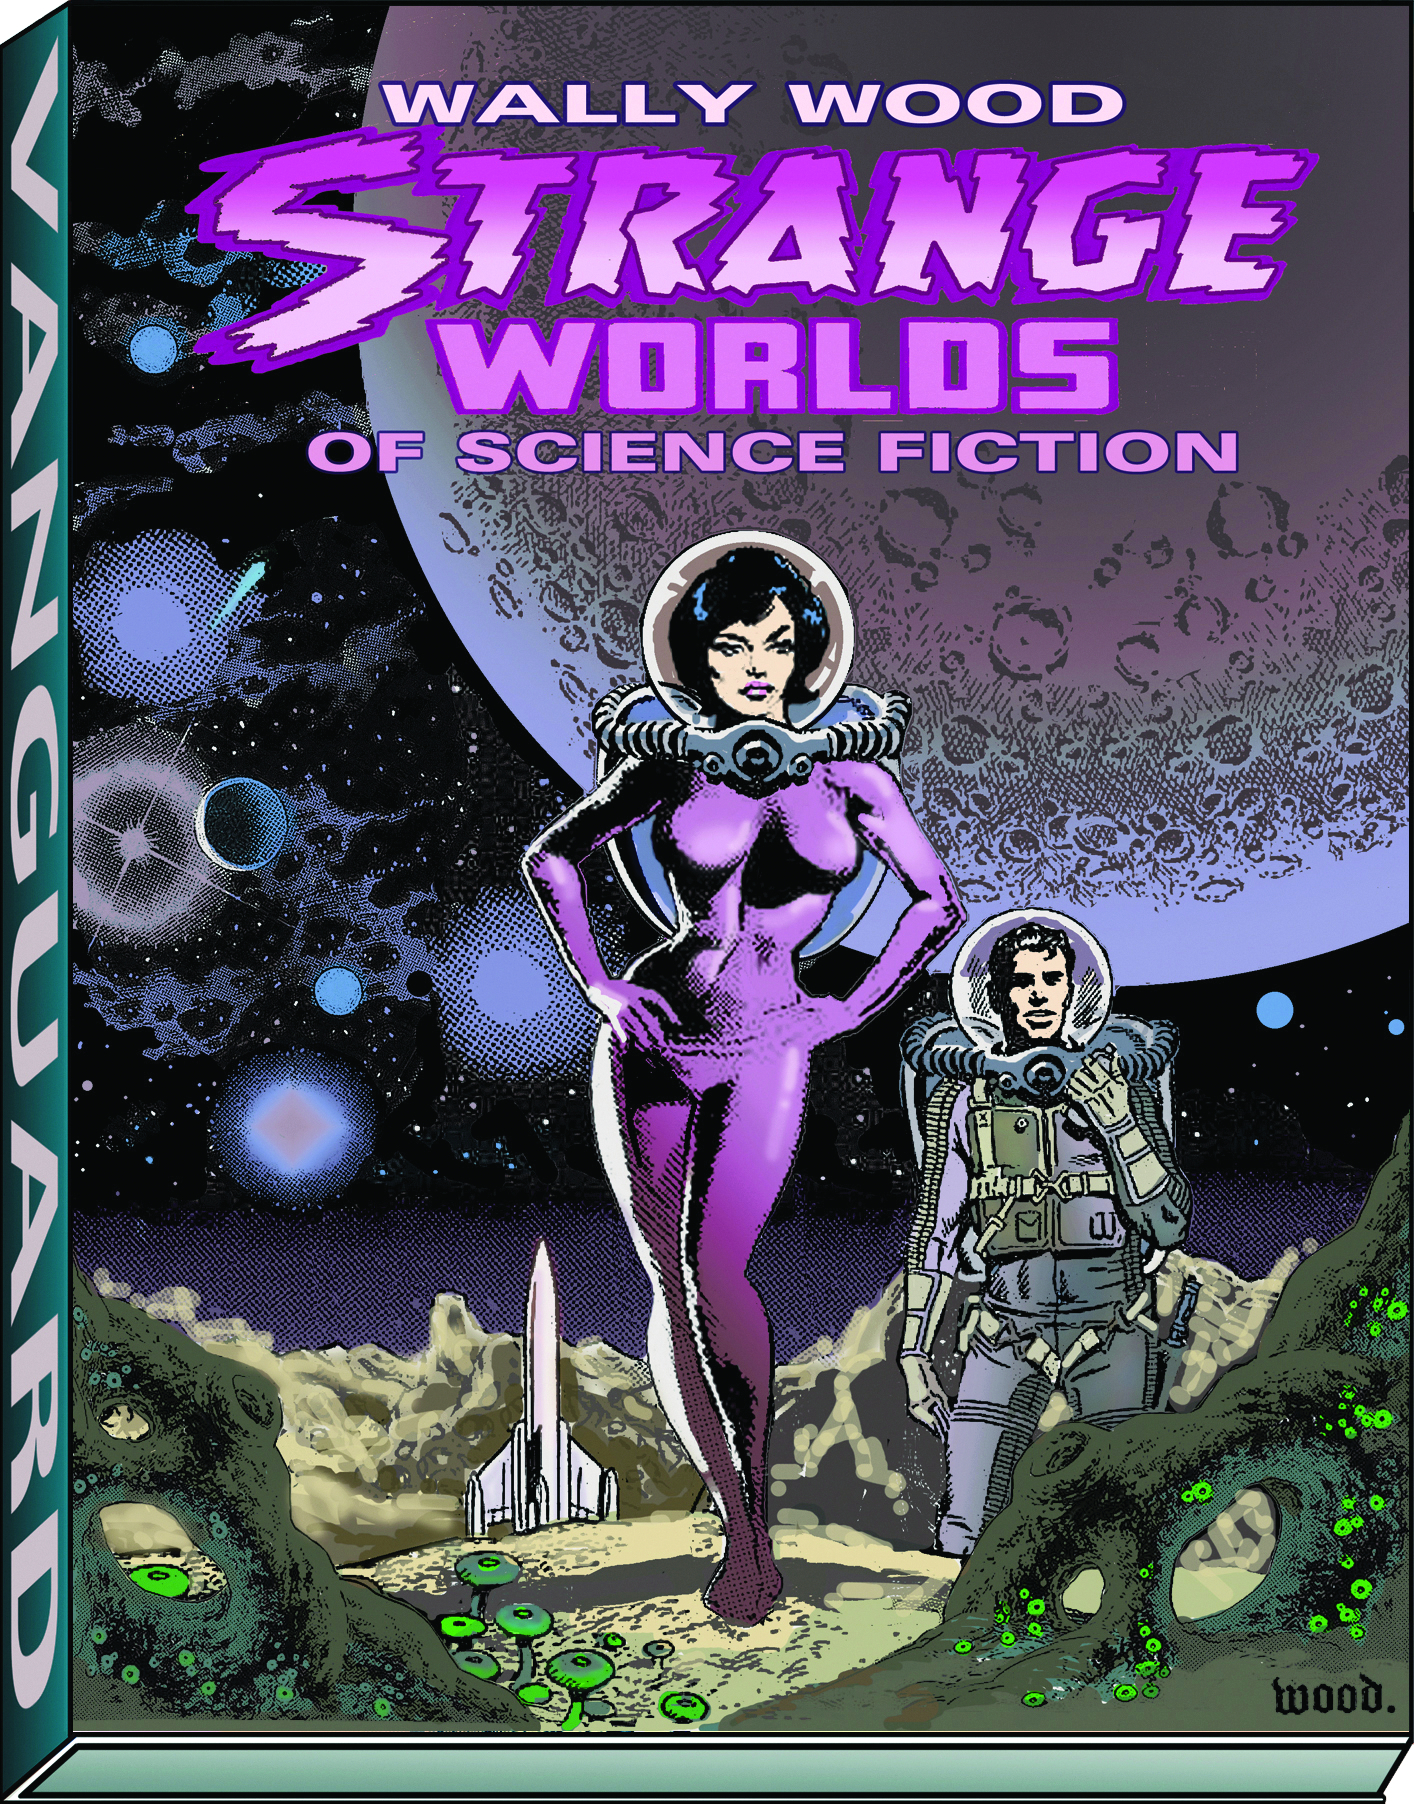 WALLY WOOD STRANGE WORLDS OF SCIENCE FICTION HC